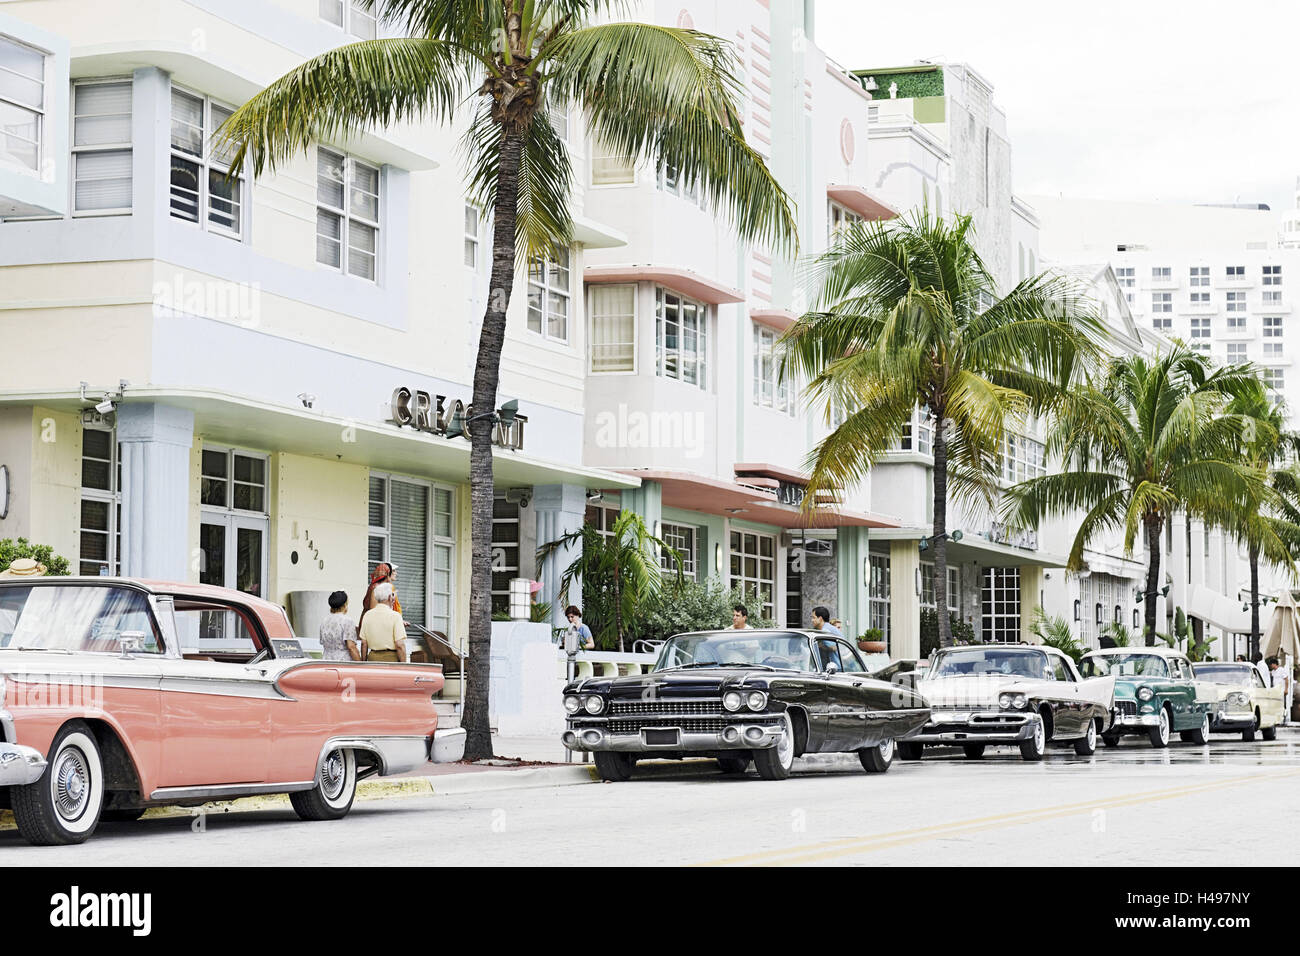 Vintage Cars And South Beach Stock Photos & Vintage Cars And South ...